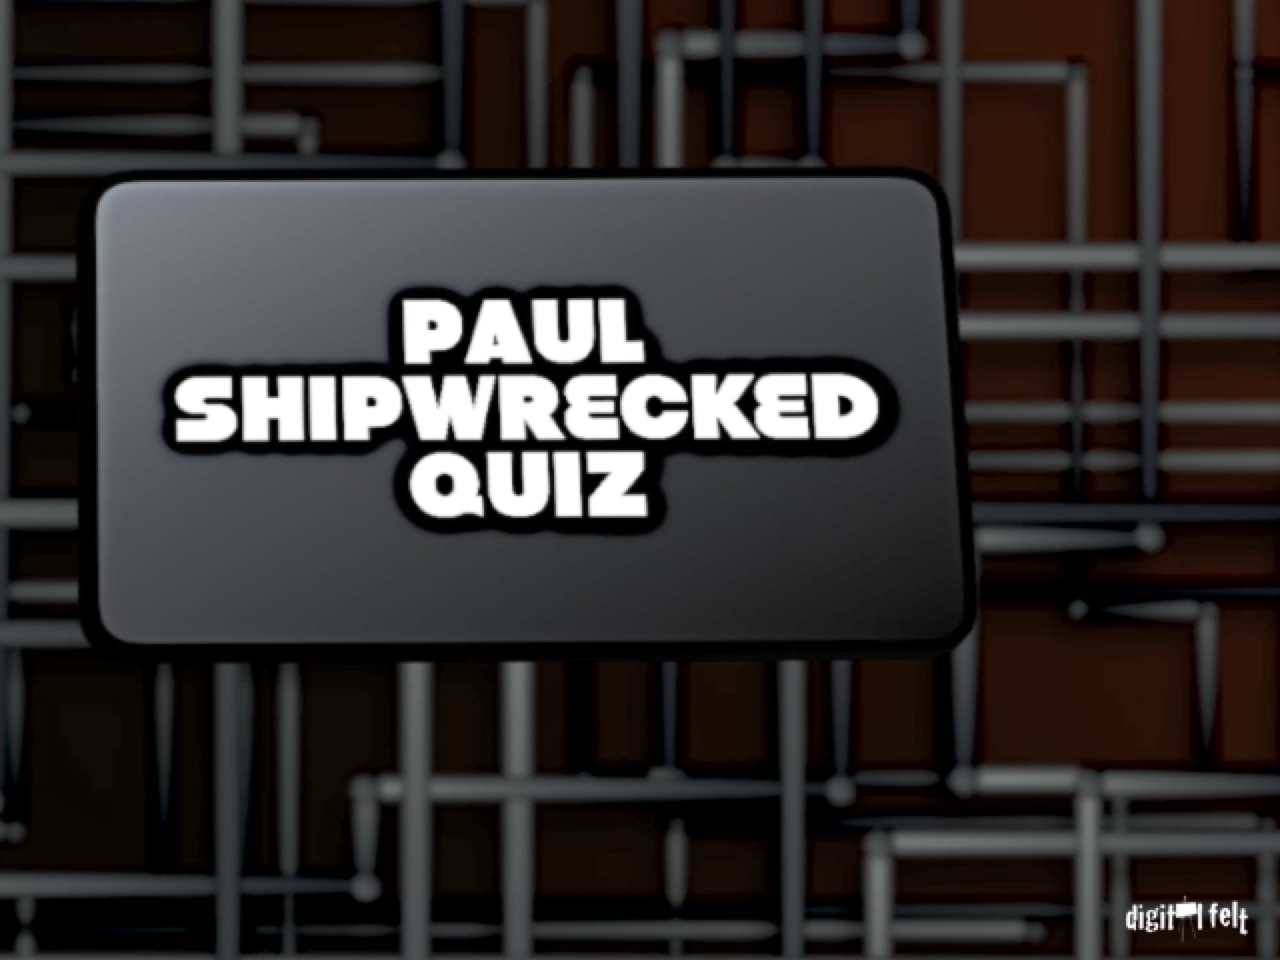 BIBLE QUIZ - PAUL IS SHIPWRECKED